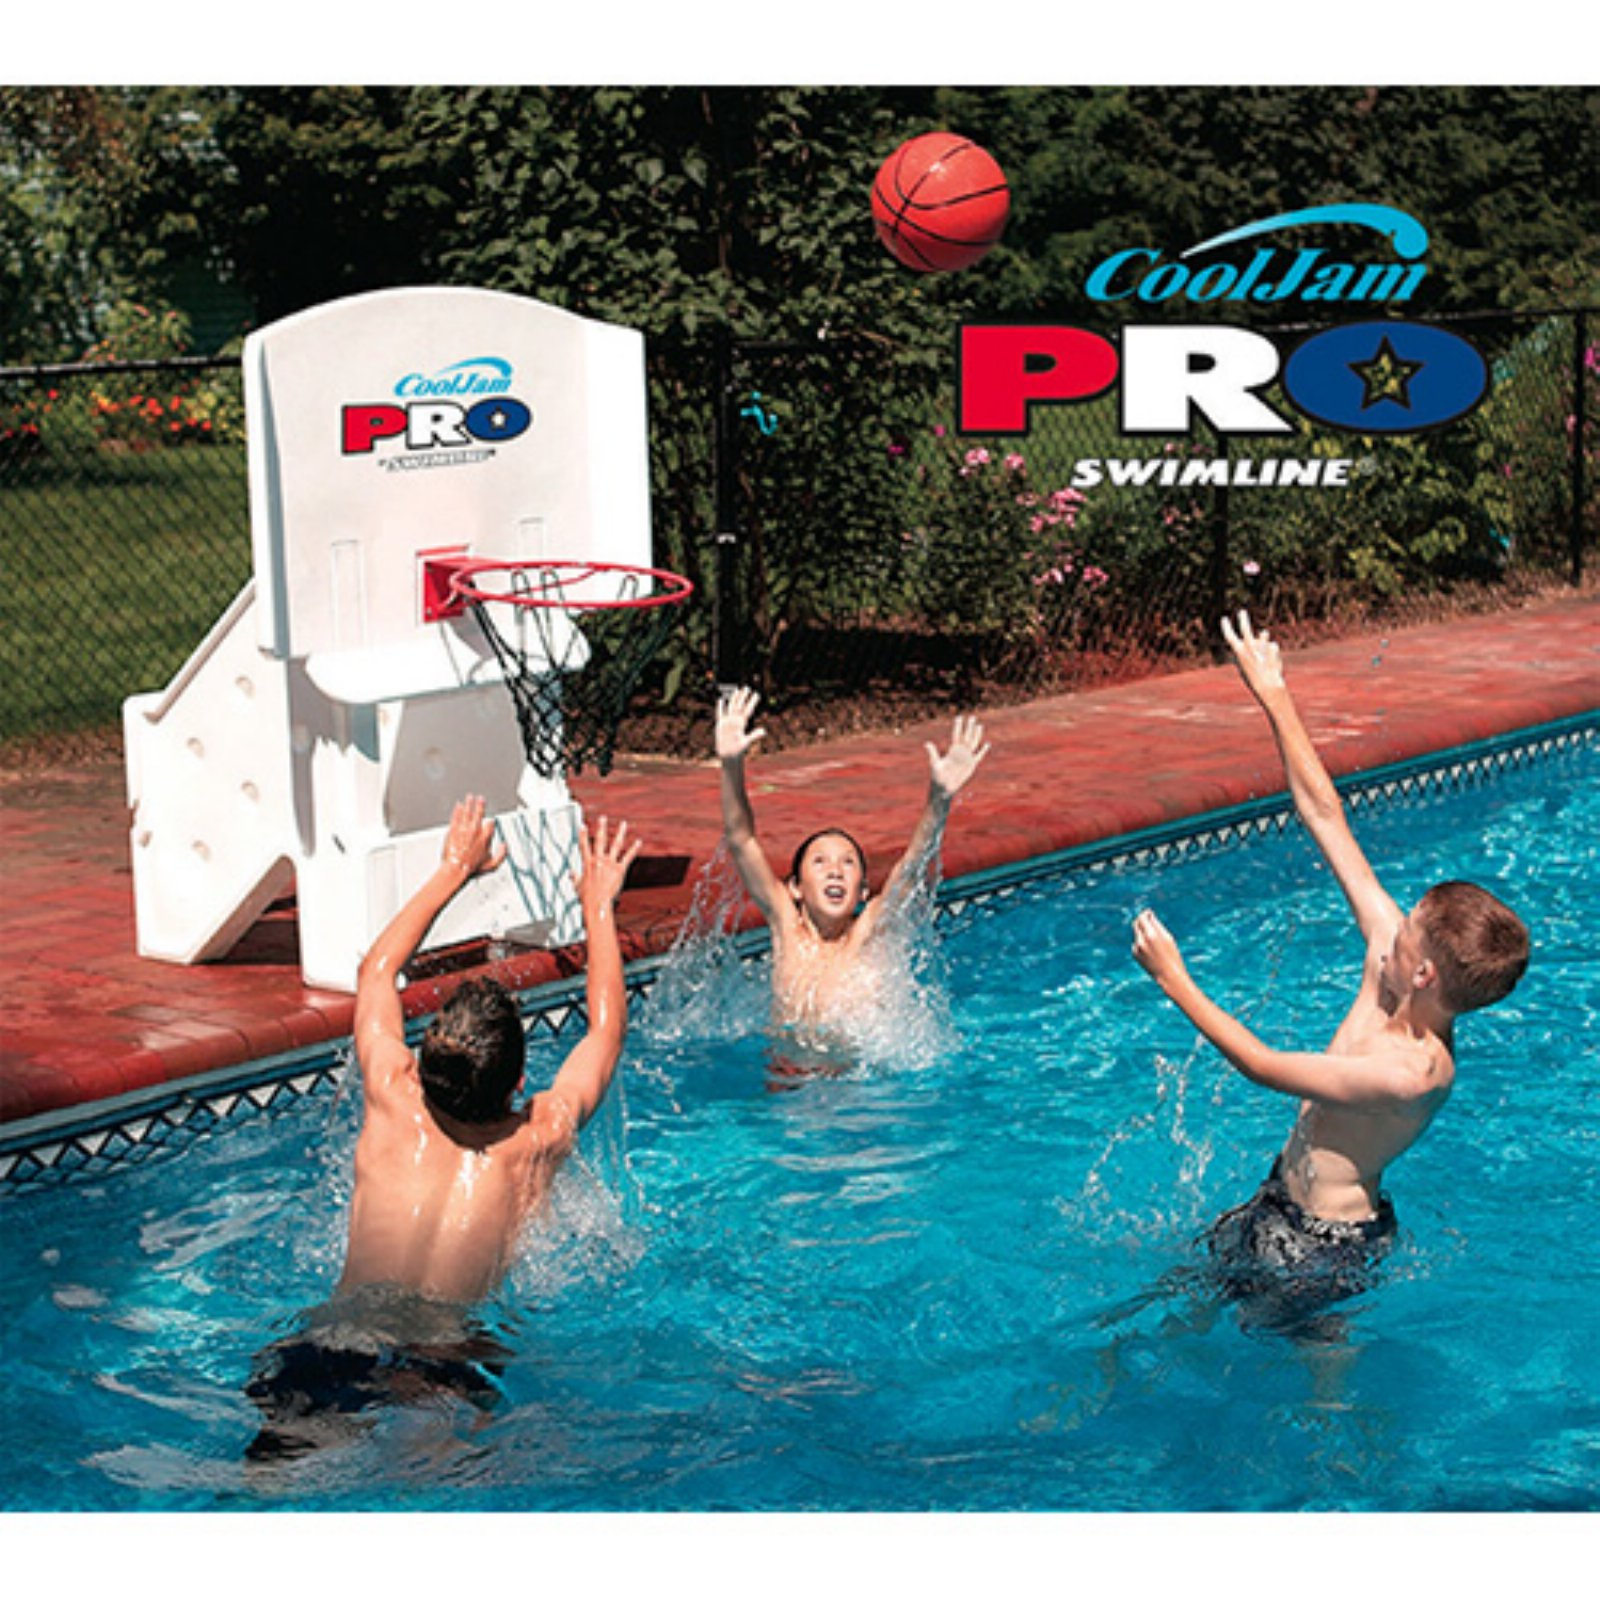 Cool Jam Pro Poolside Basketball Game For In-Ground Pools